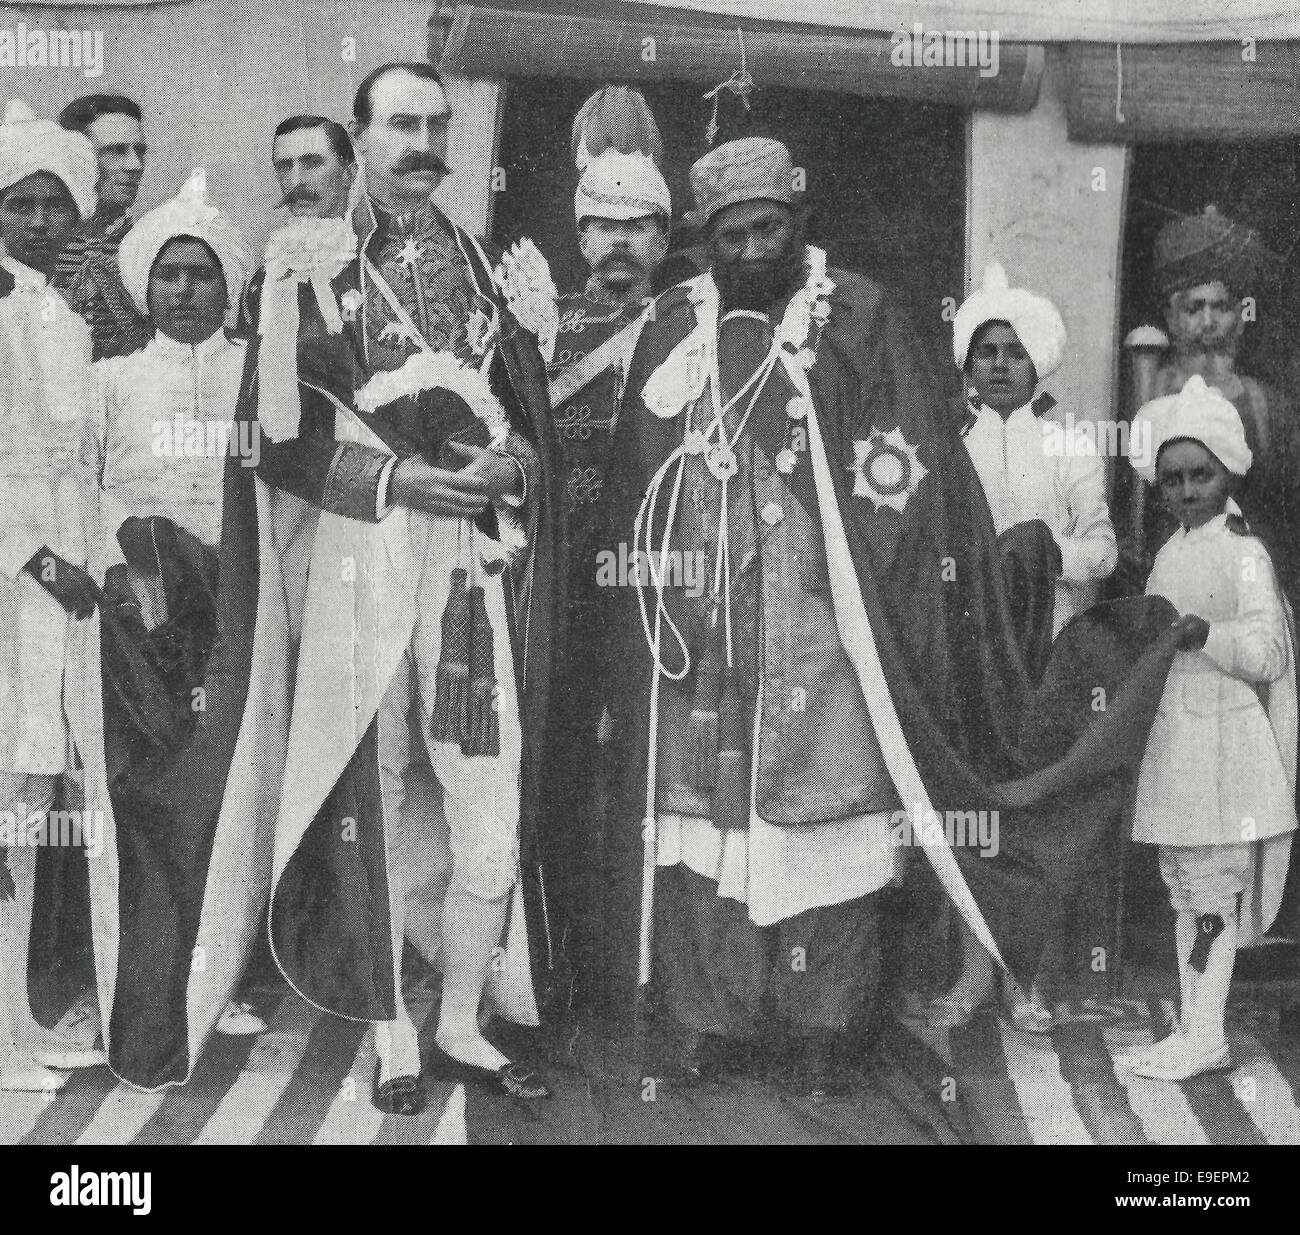 His Excellency the Rt Honourable Lord Sandhurst, Governor of Bombay with H.H. the Mir of Khairpur, circa 1899 - Stock Image